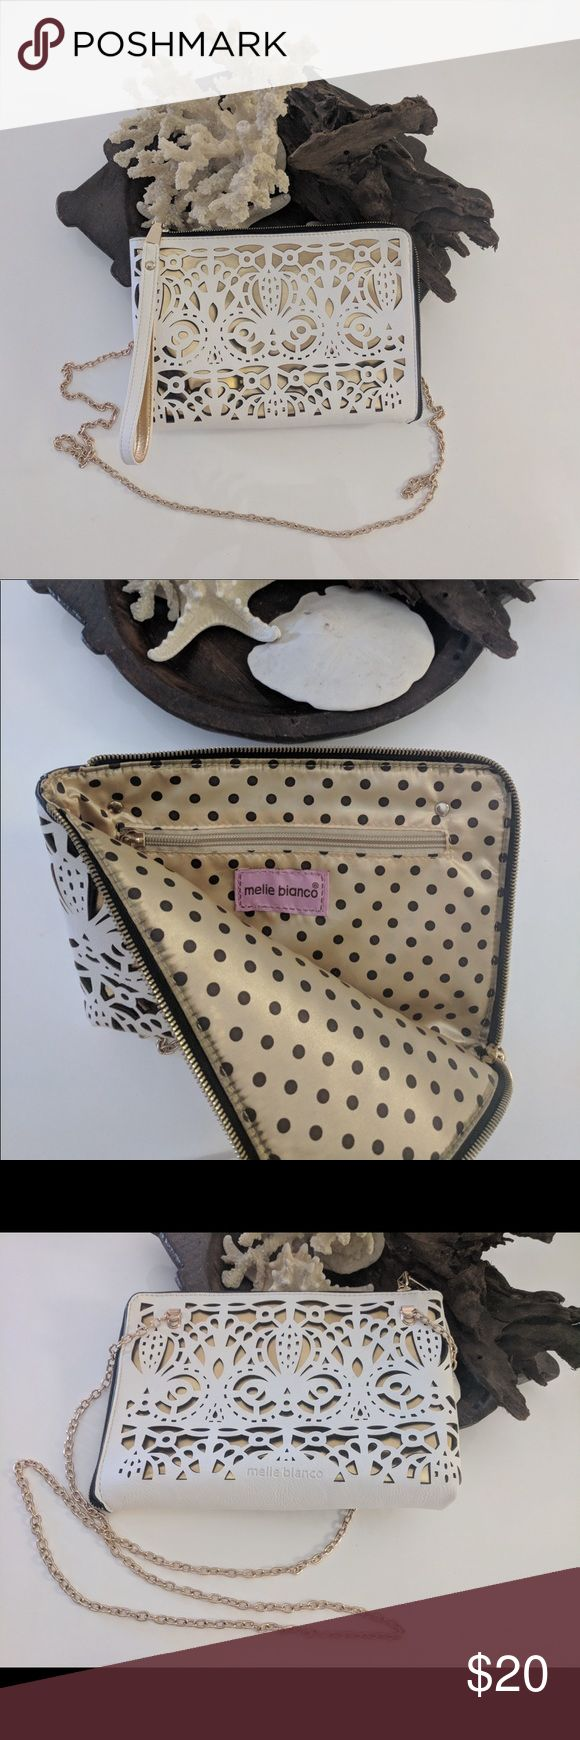 """Melie Bianco laser cut cross body/ clutch vegan Nice used condition Melie Bianco bag White with gold chain. Polyurethane laser cut white over gold. Cute polka dot lining. 9"""" wide x 1"""" deep x 6.5"""" tall. Inside zipper pocket. Melie Bianco Bags Crossbody Bags"""